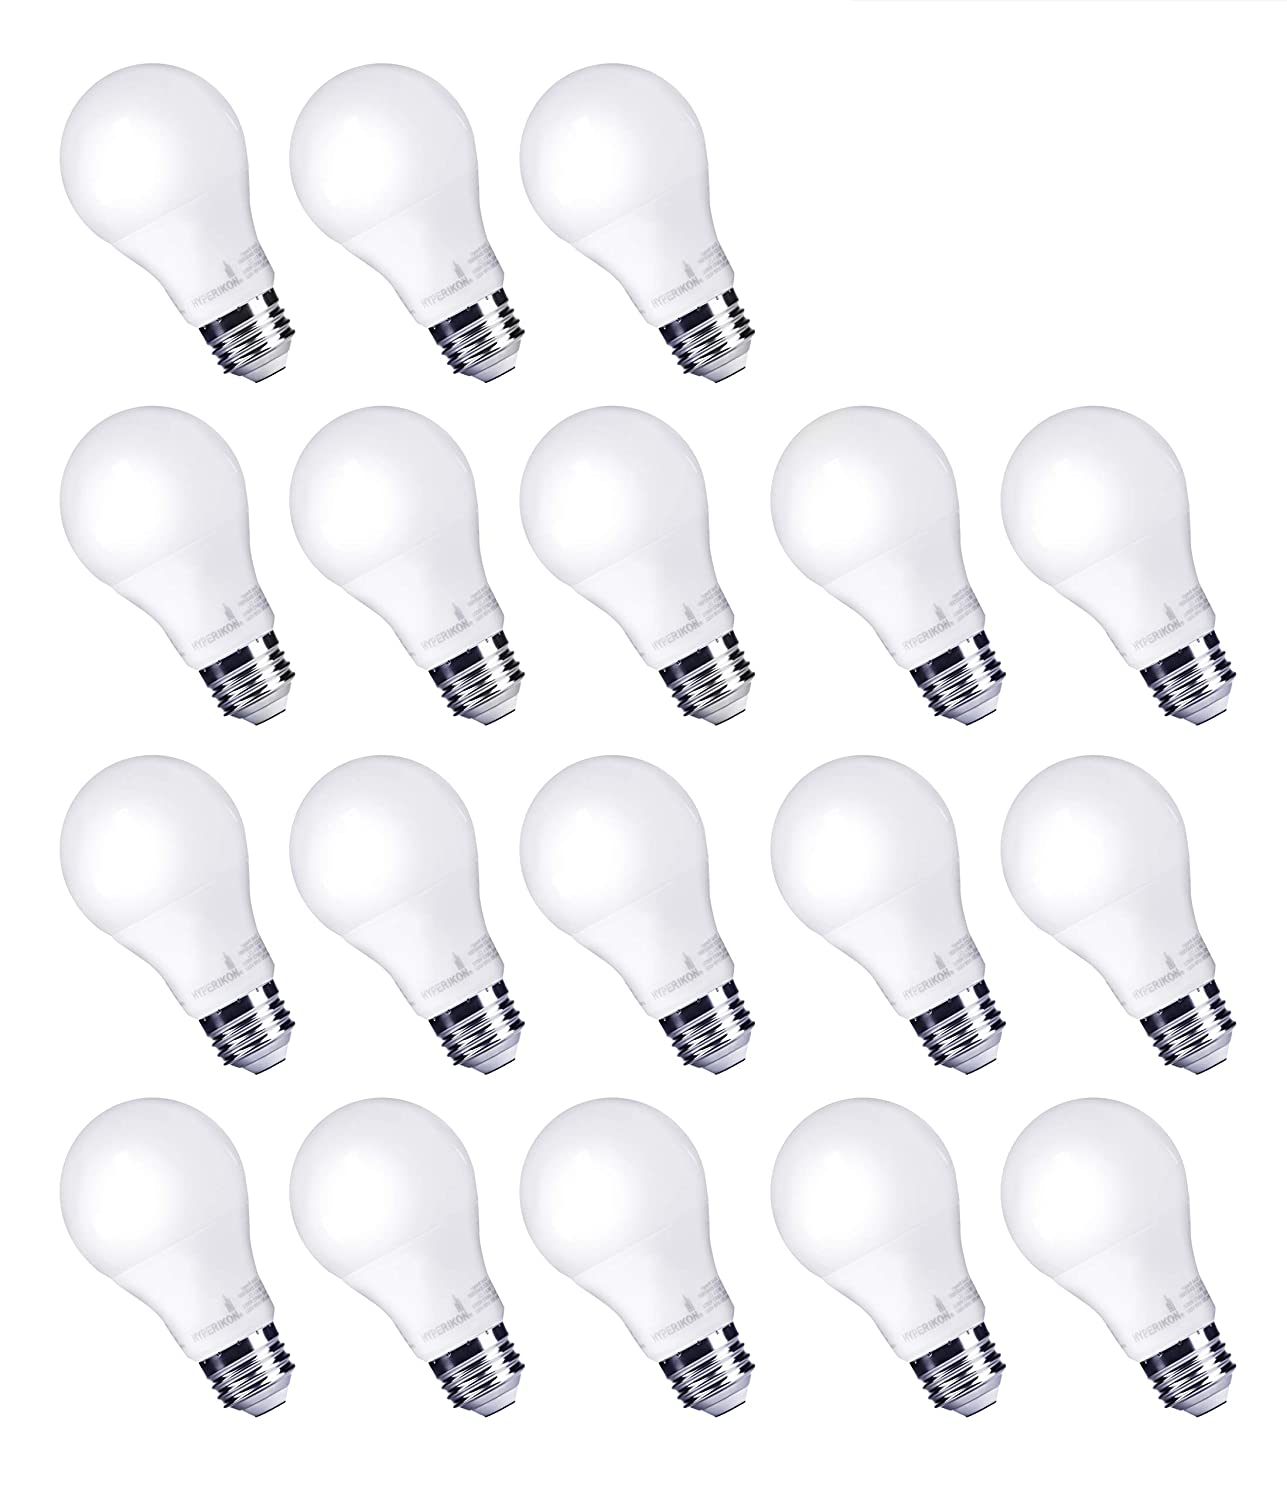 HyperSelect 9W LED Light Bulb A19 - E26 Bulb Non-Dimmable LED Bulb [60W Equivalent], 3000K (Soft White Glow), 820 Lumens, Medium Screw Base, Omnidirectional, UL-Listed - (Pack of 18) Hyperikon Inc.